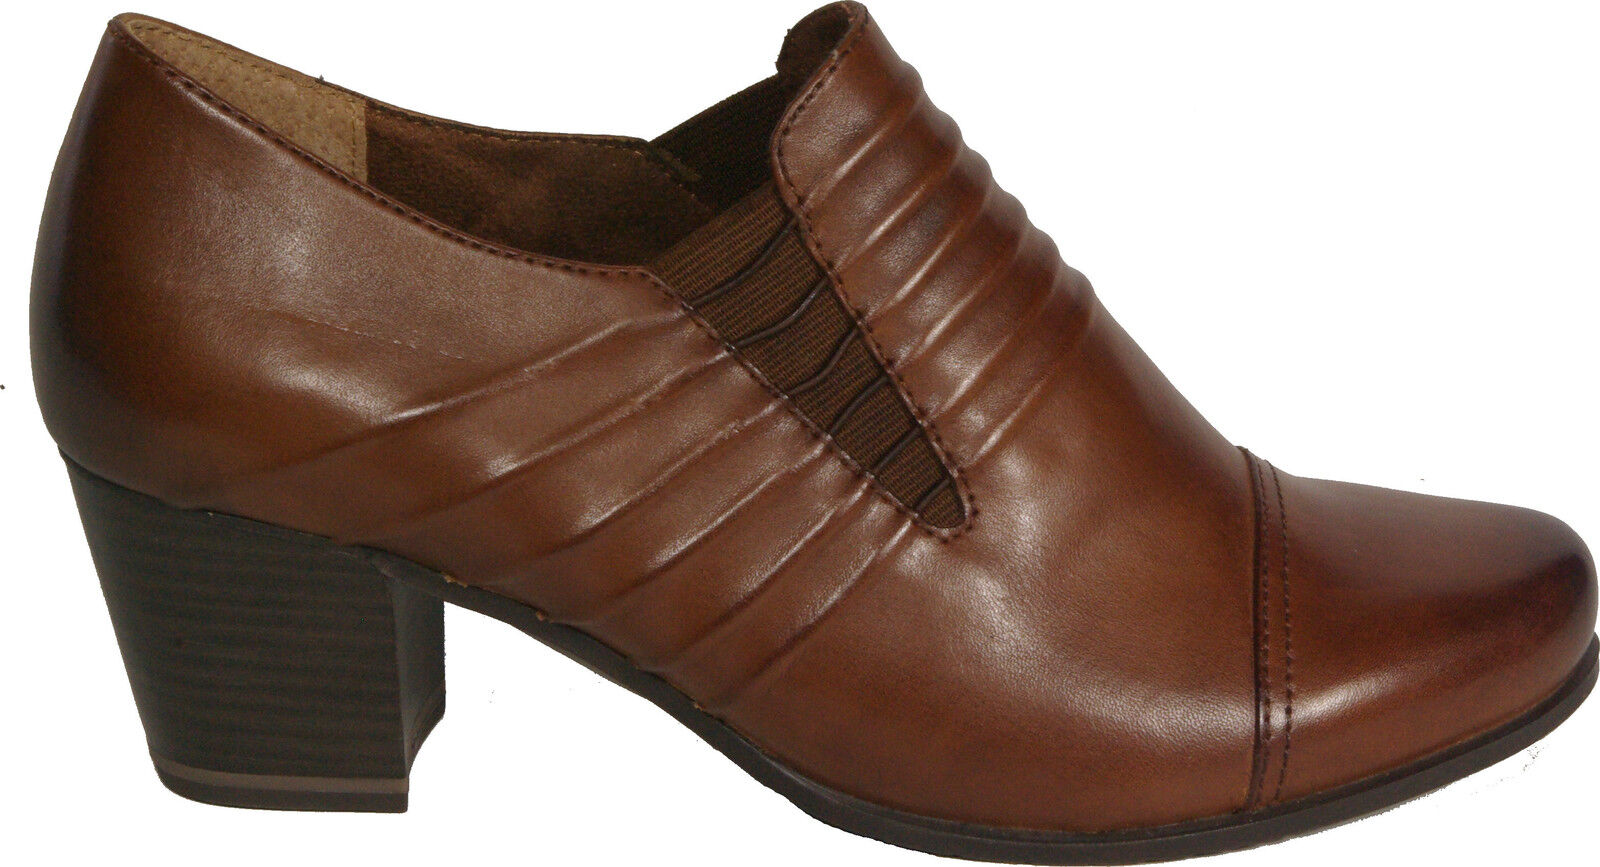 Tamaris shoes High Front Pumps Brown (Muscat) REAL LEATHER NEW